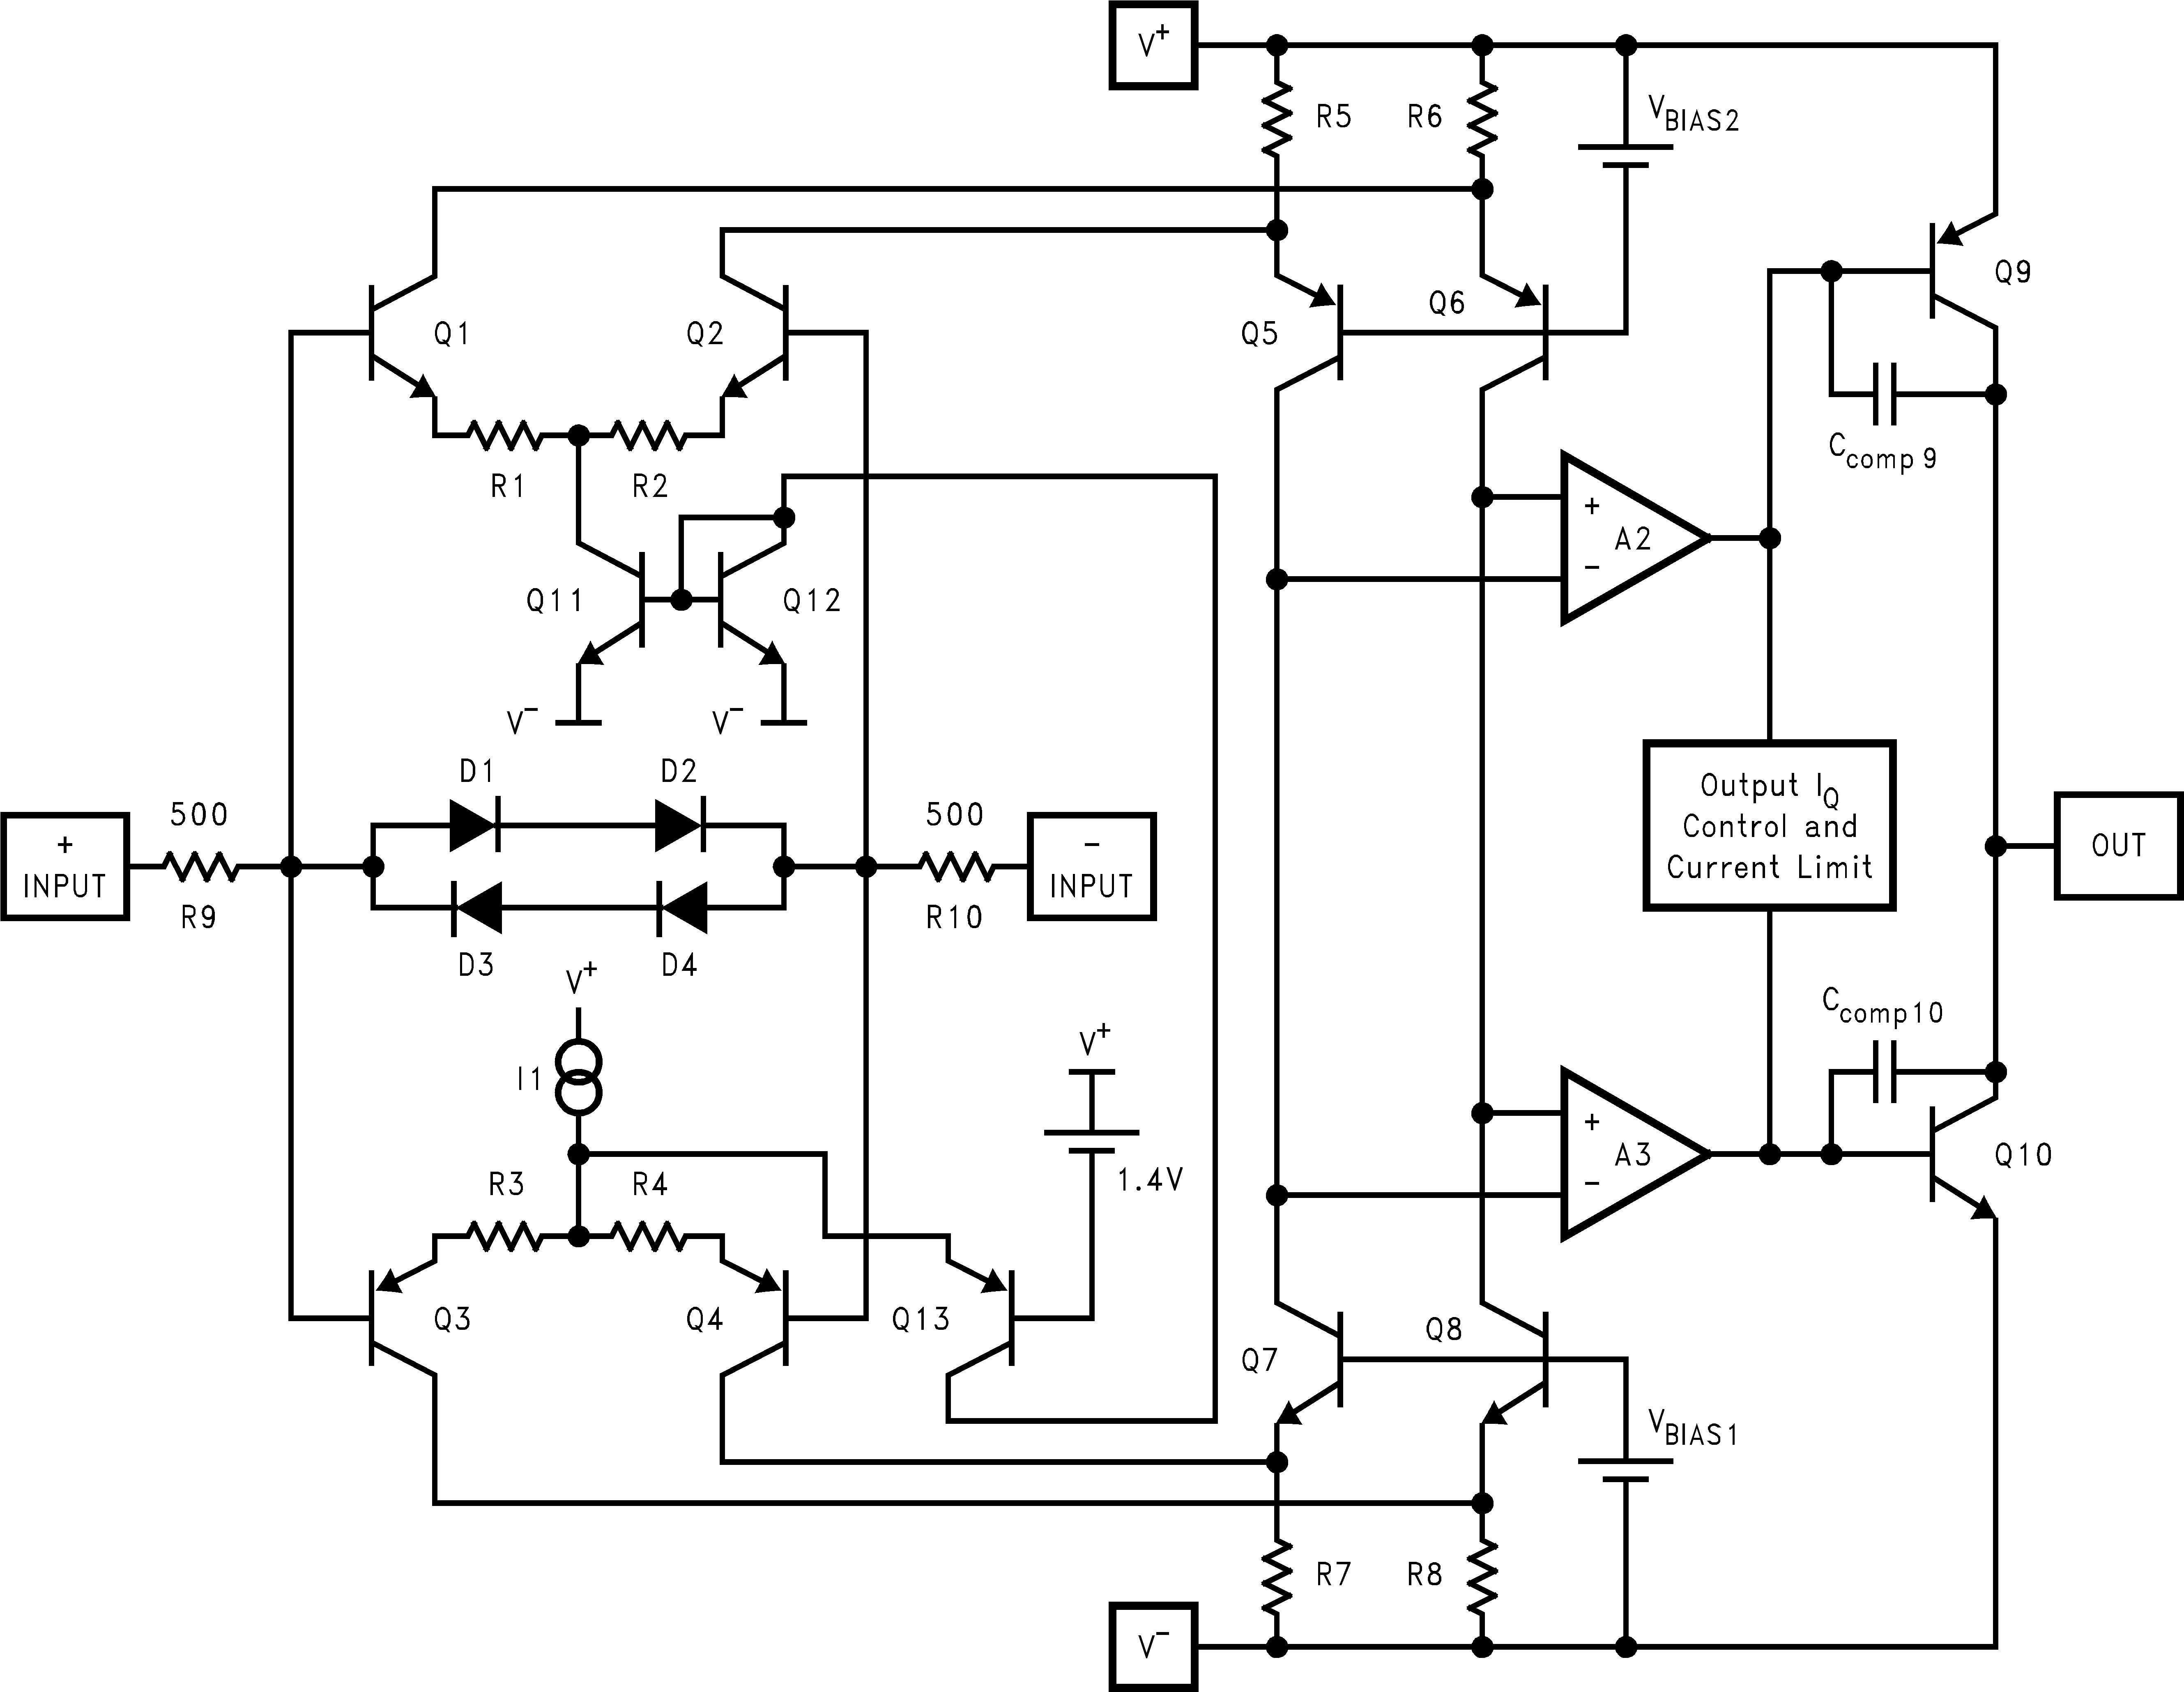 Lm8272 datasheet rrio high output current unlimited cap load op lm8272 10130870g figure 35 simplified schematic diagram pooptronica Images